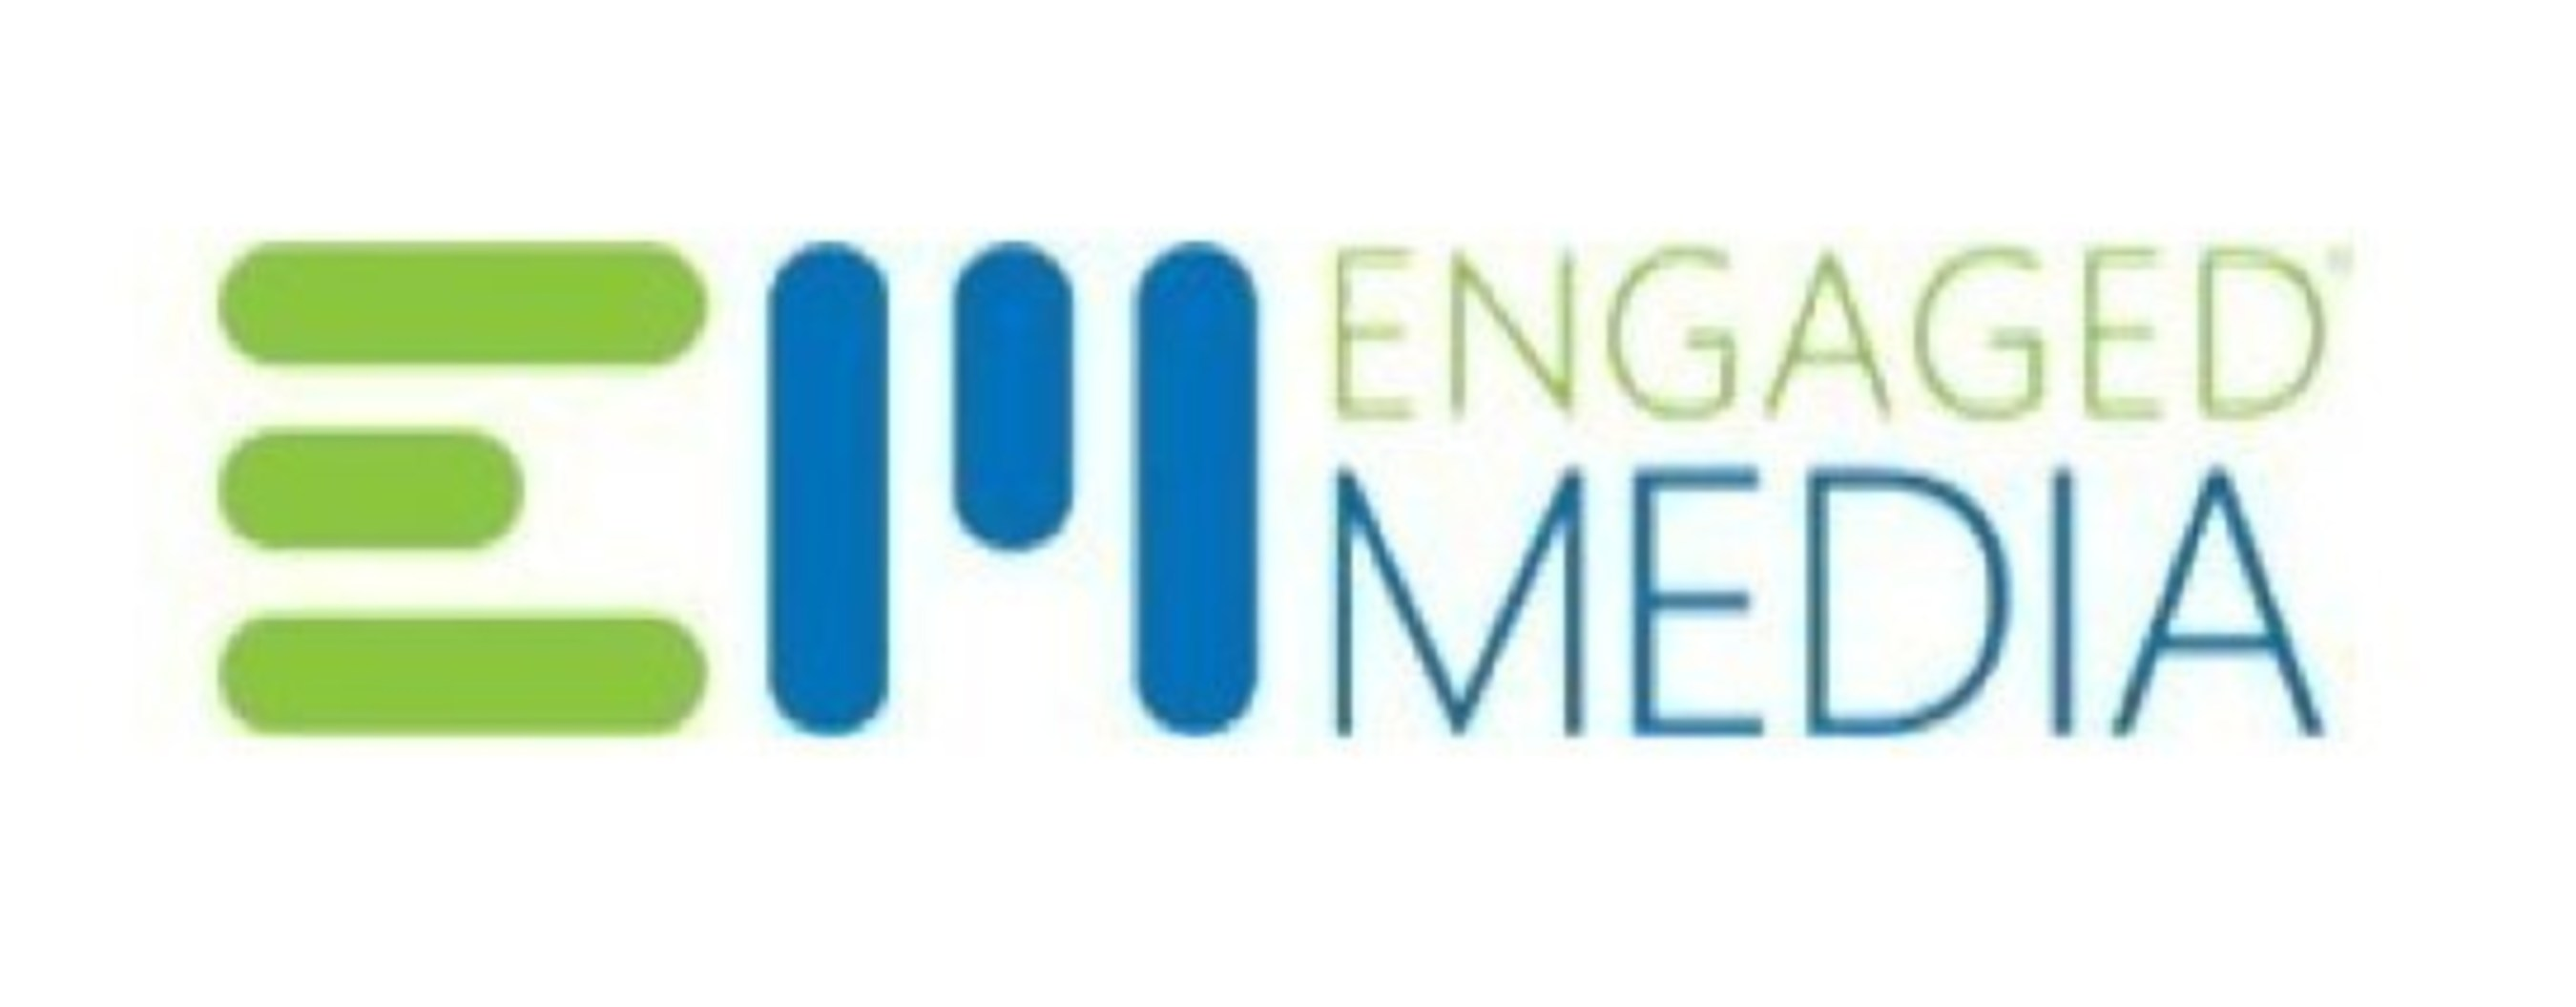 EngagedMedia Selects Atlanta as New Operations Headquarters Site